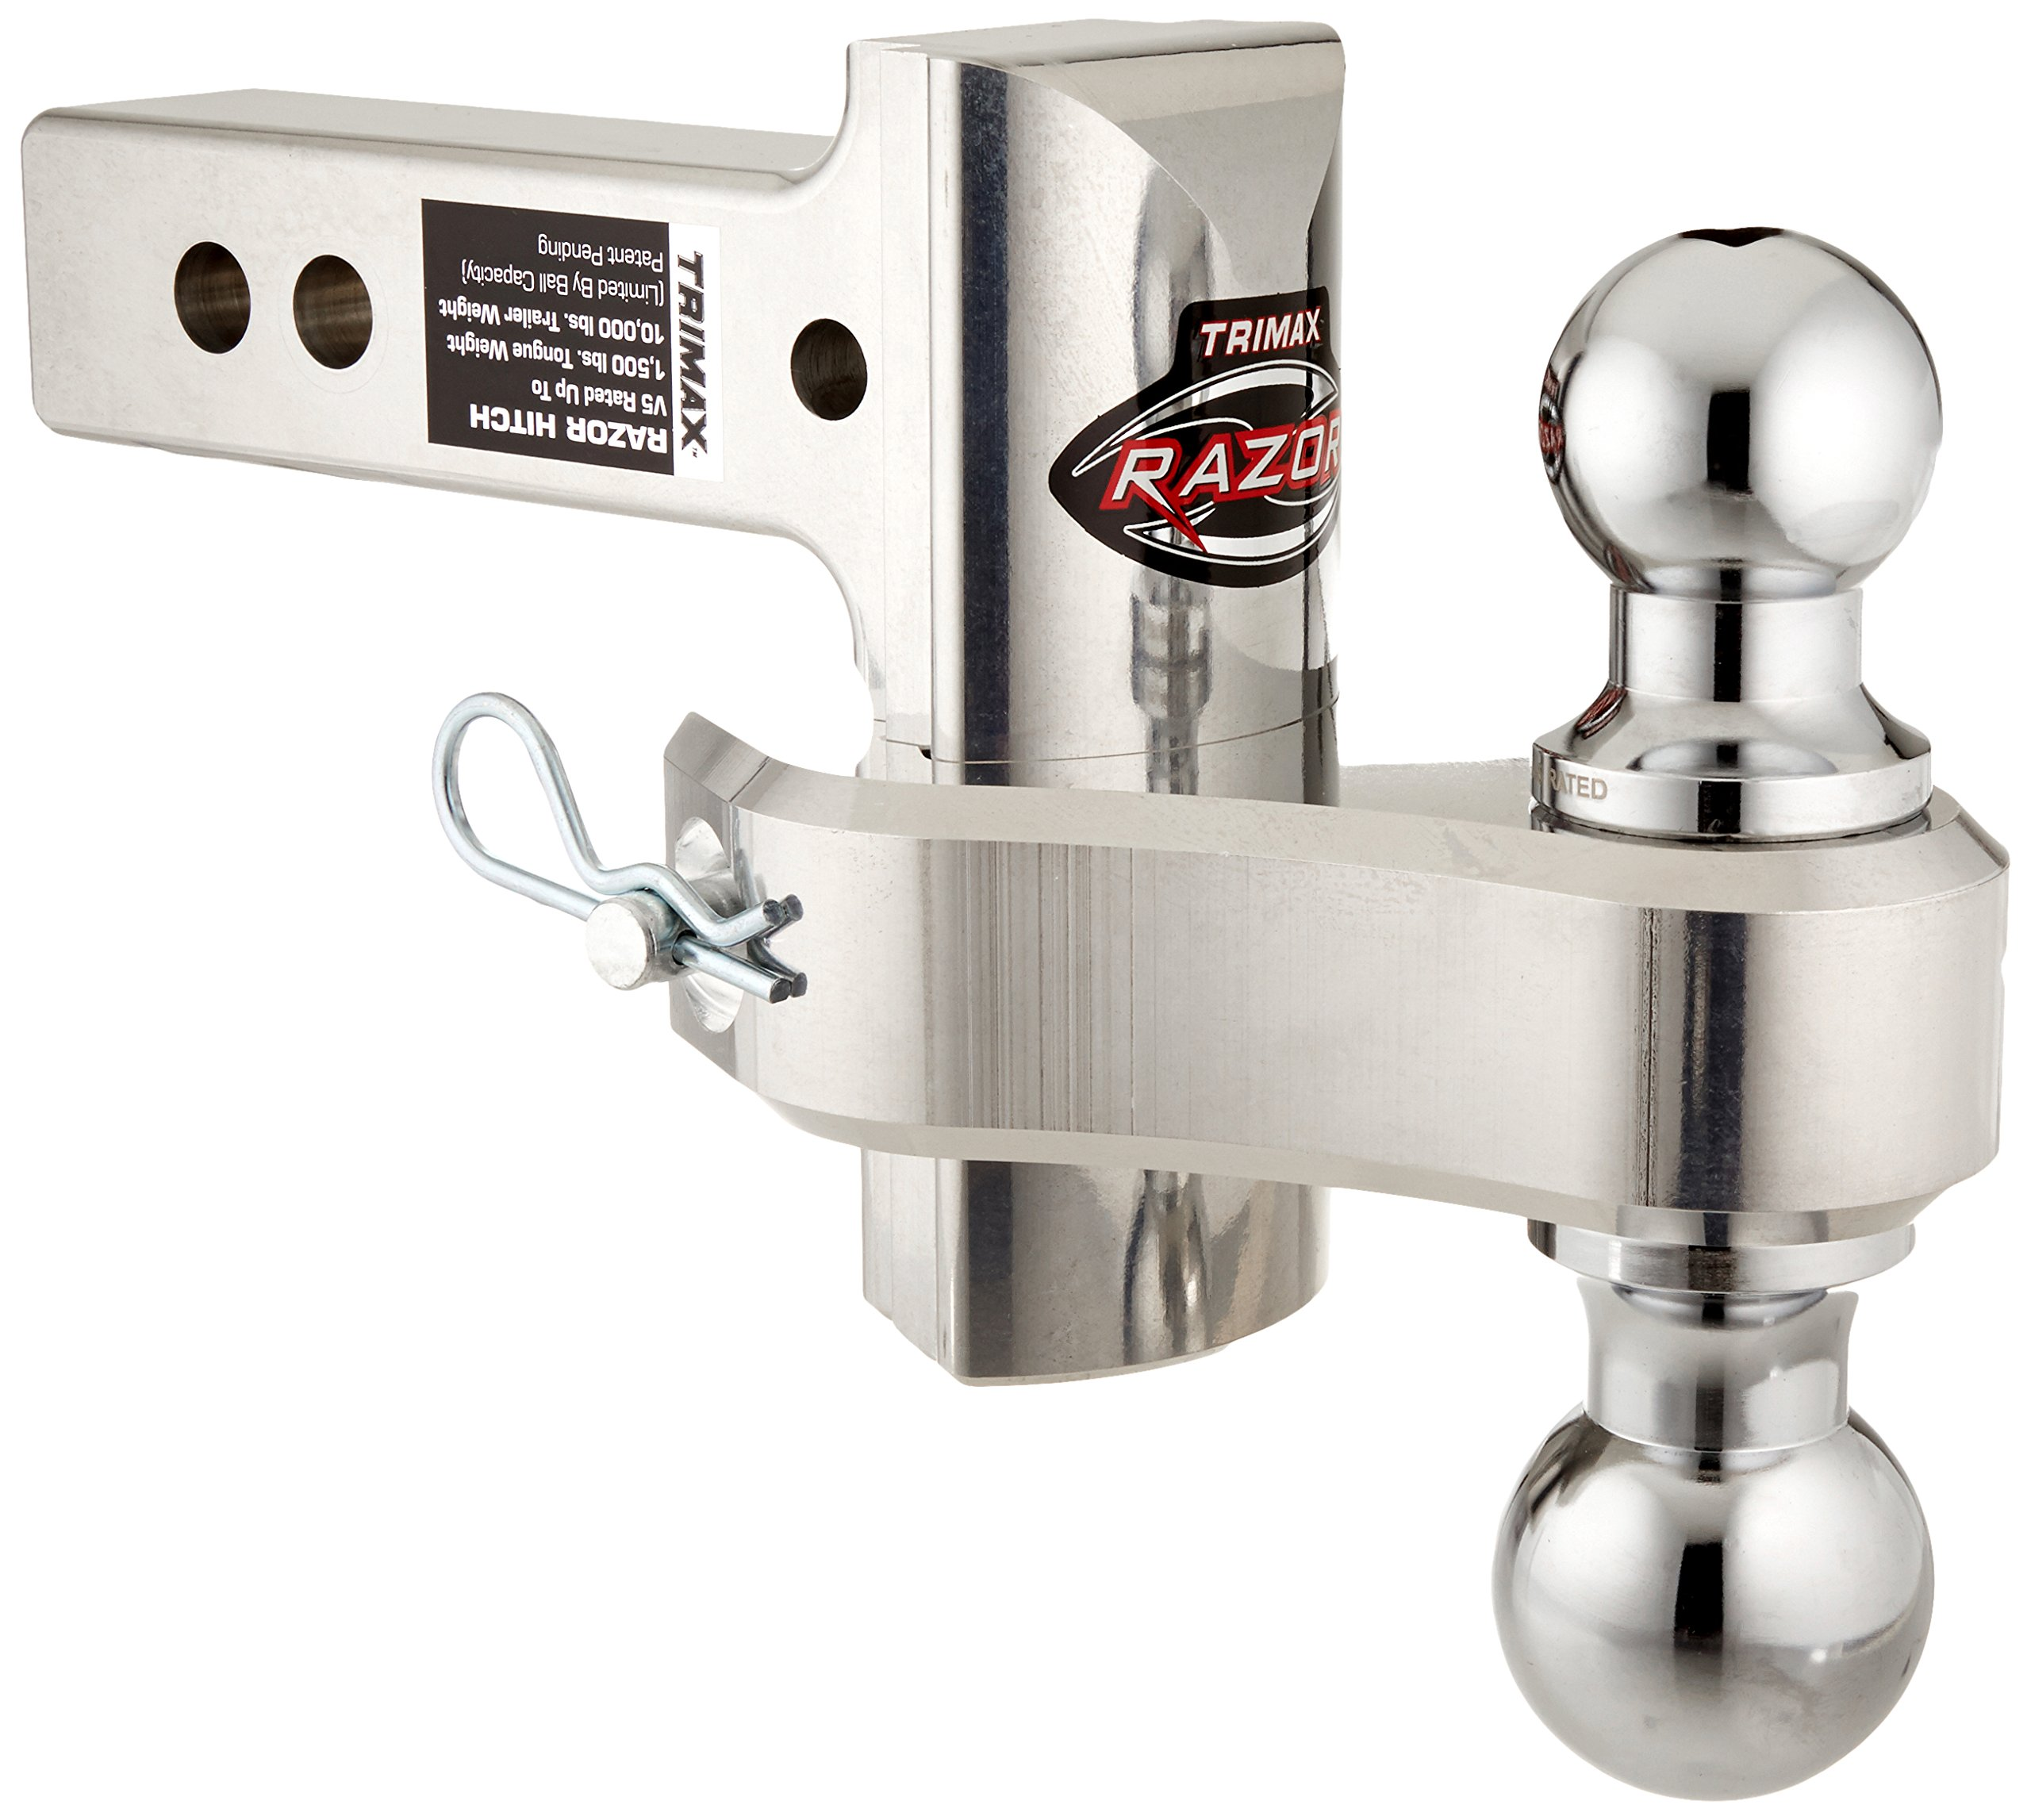 """Trimax TRZ4ALRP 4"""" Aluminum Adjustable Hitch with Dual Hitch Ball and Receiver Adjustment Pin, Silver"""